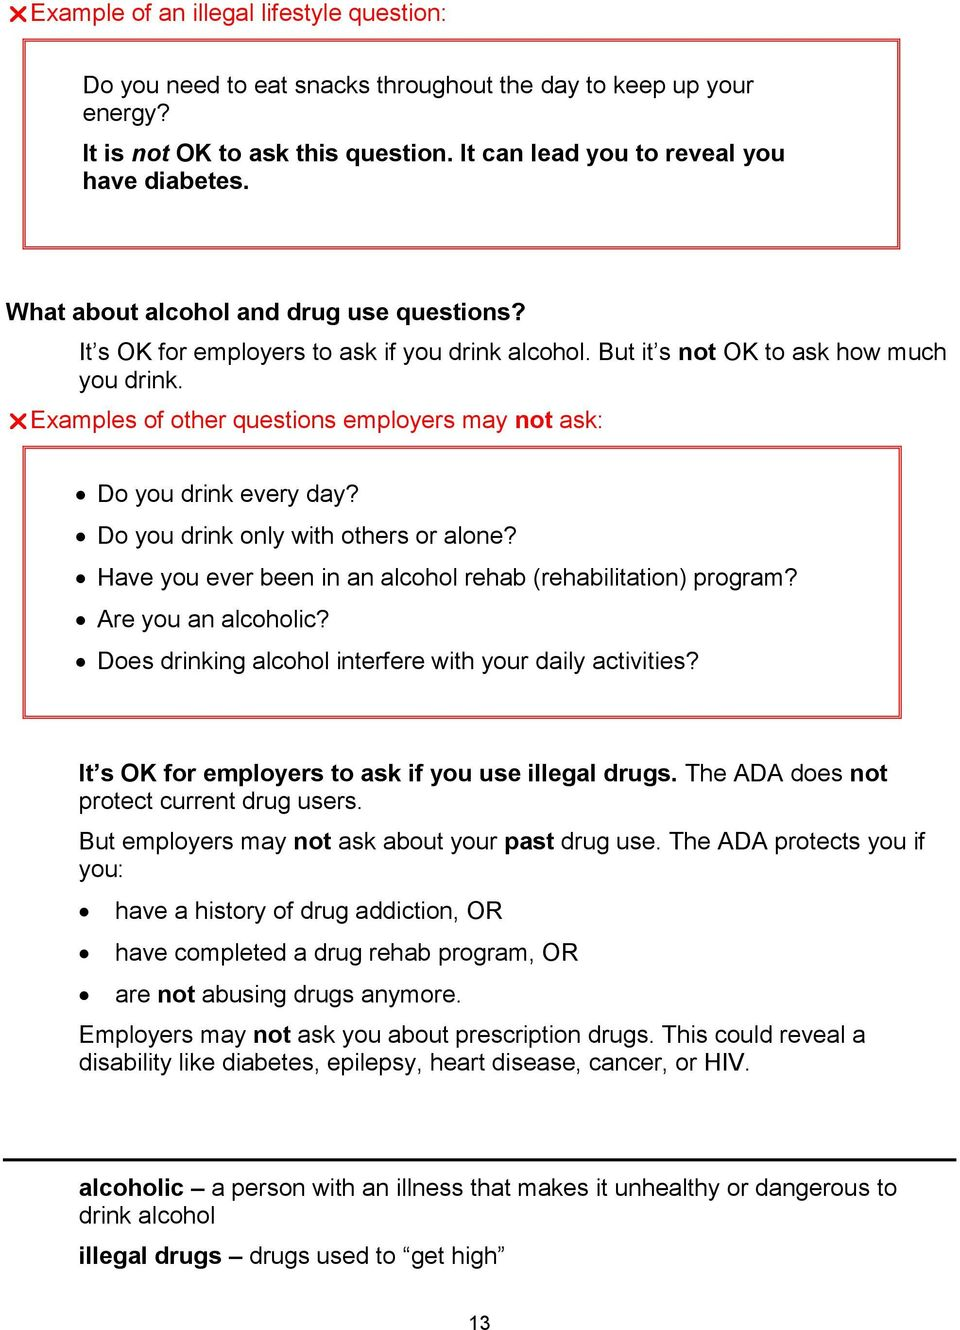 Examples of other questions employers may not ask: Do you drink every day? Do you drink only with others or alone? Have you ever been in an alcohol rehab (rehabilitation) program?